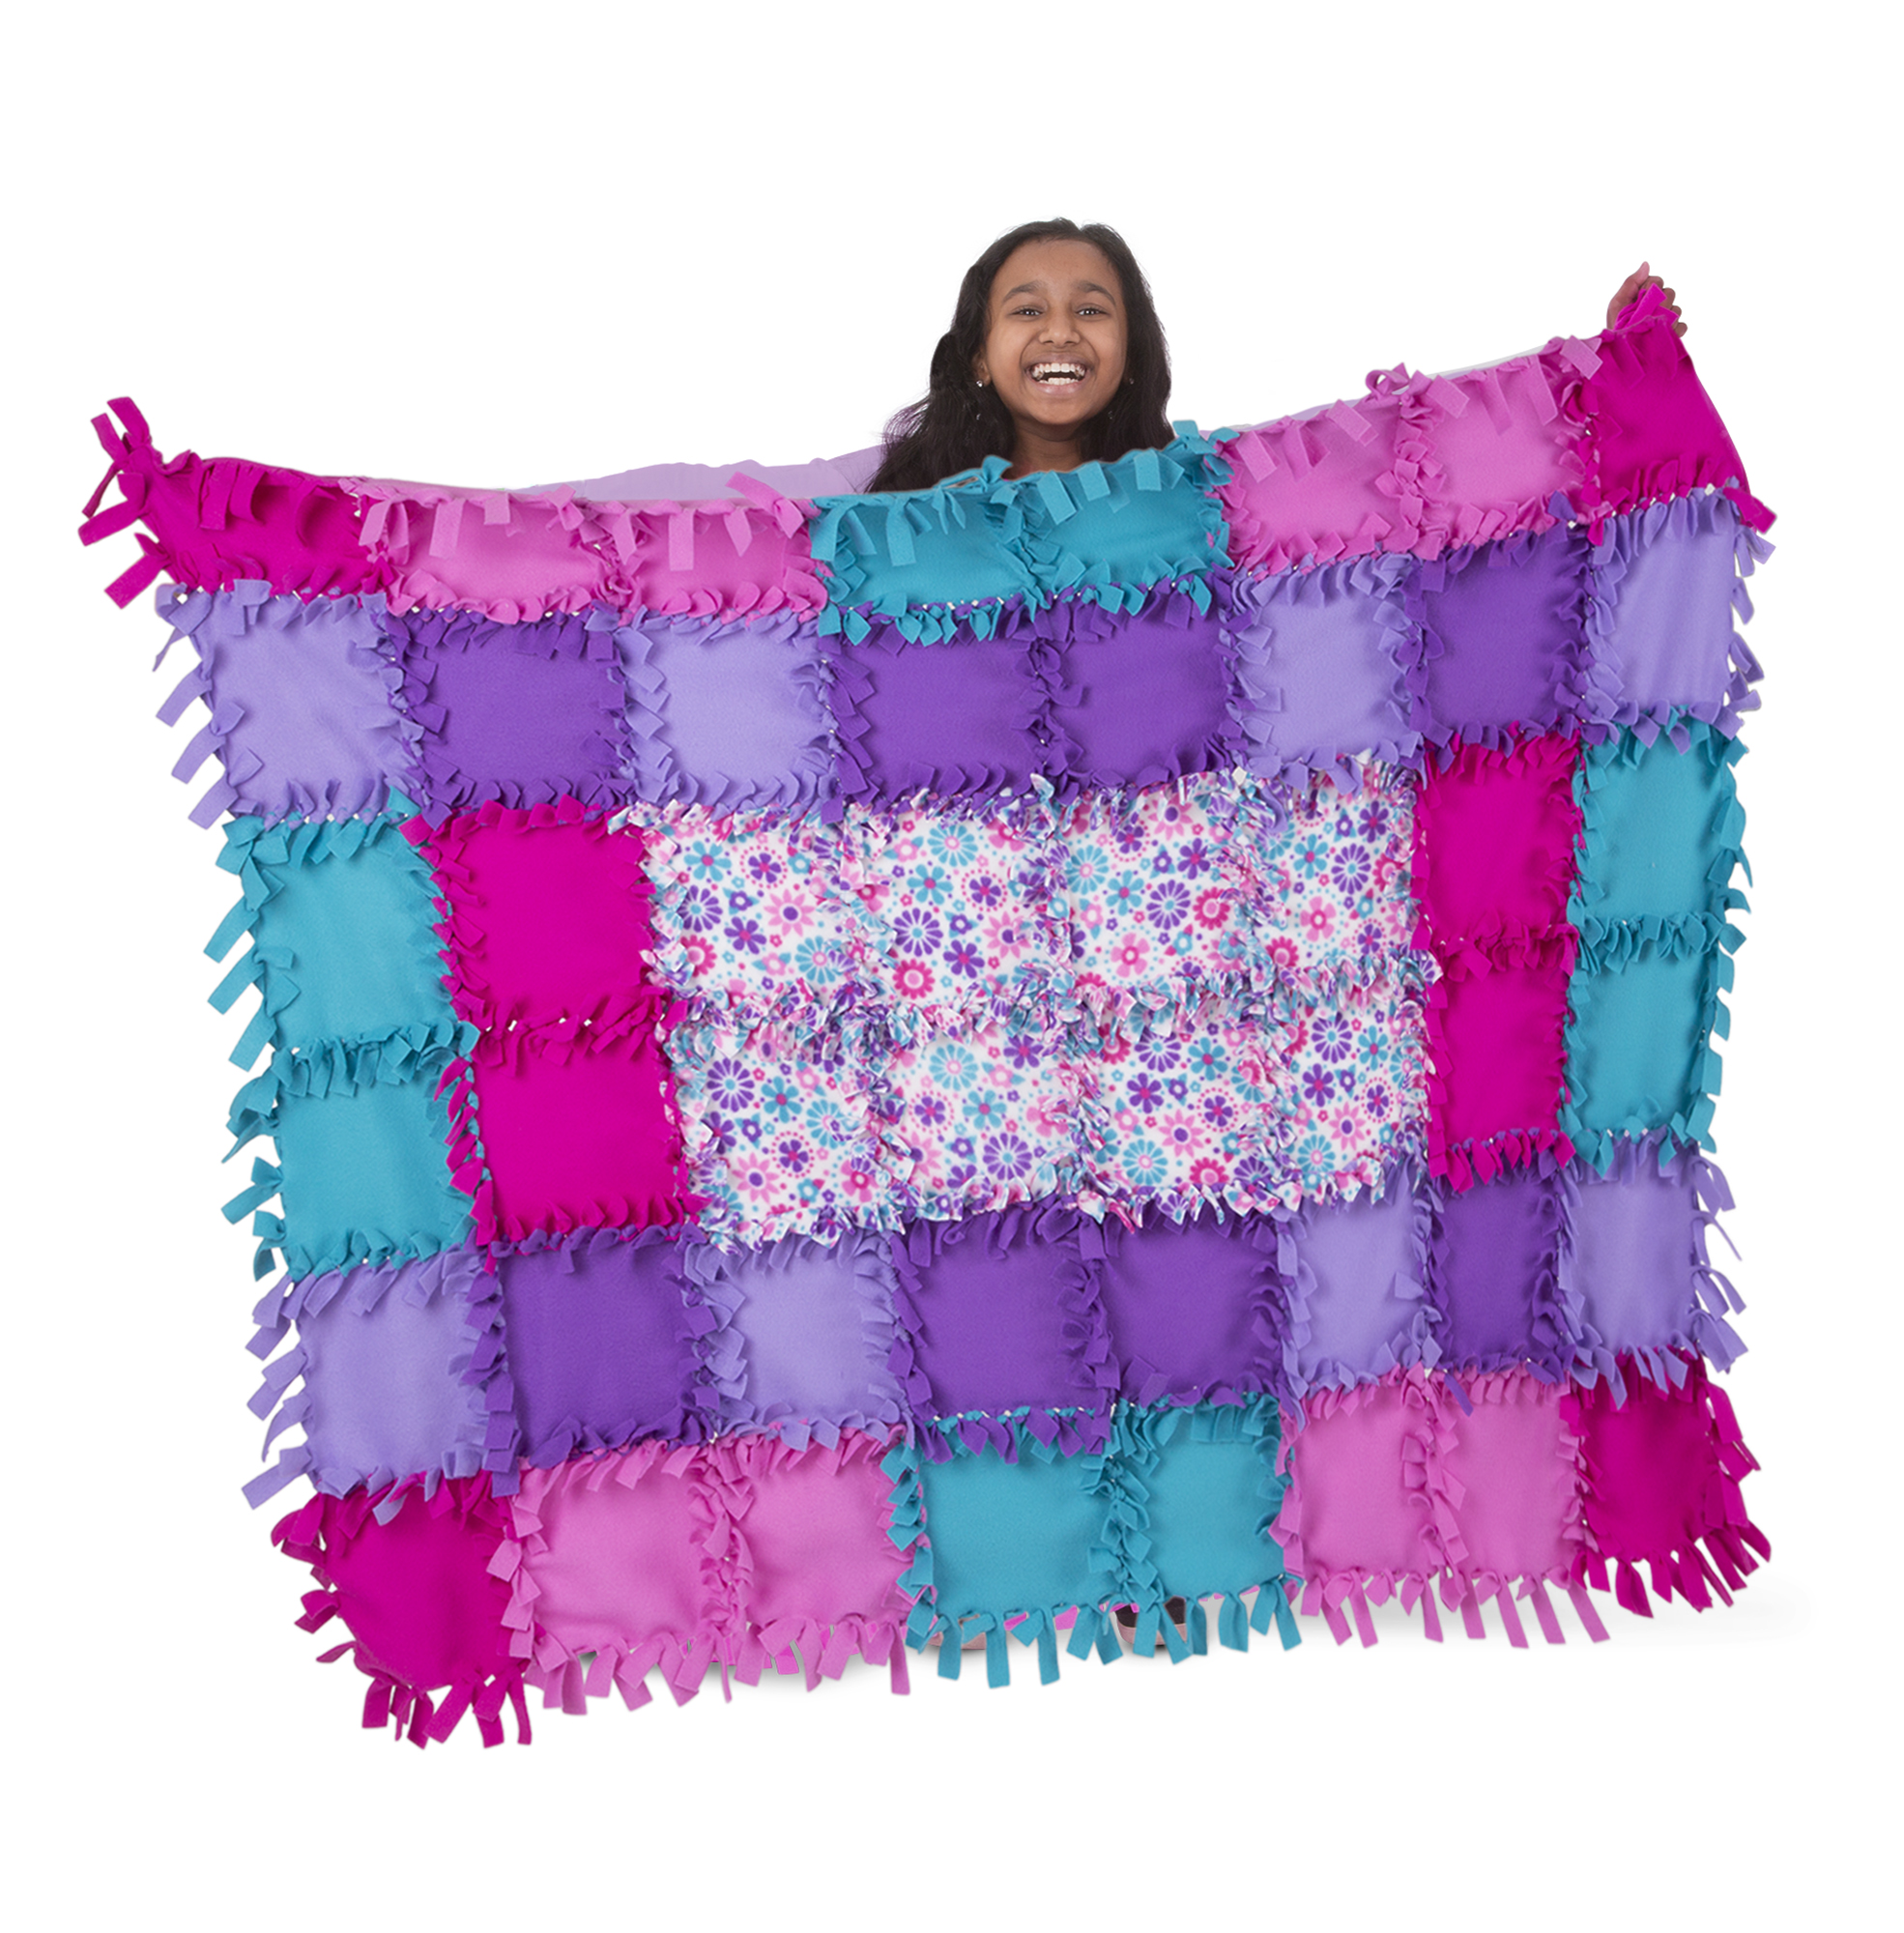 Melissa & Doug Created by Me! Flower Fleece Quilt No-Sew Craft Kit (48 squares, 4 feet x 5 feet)